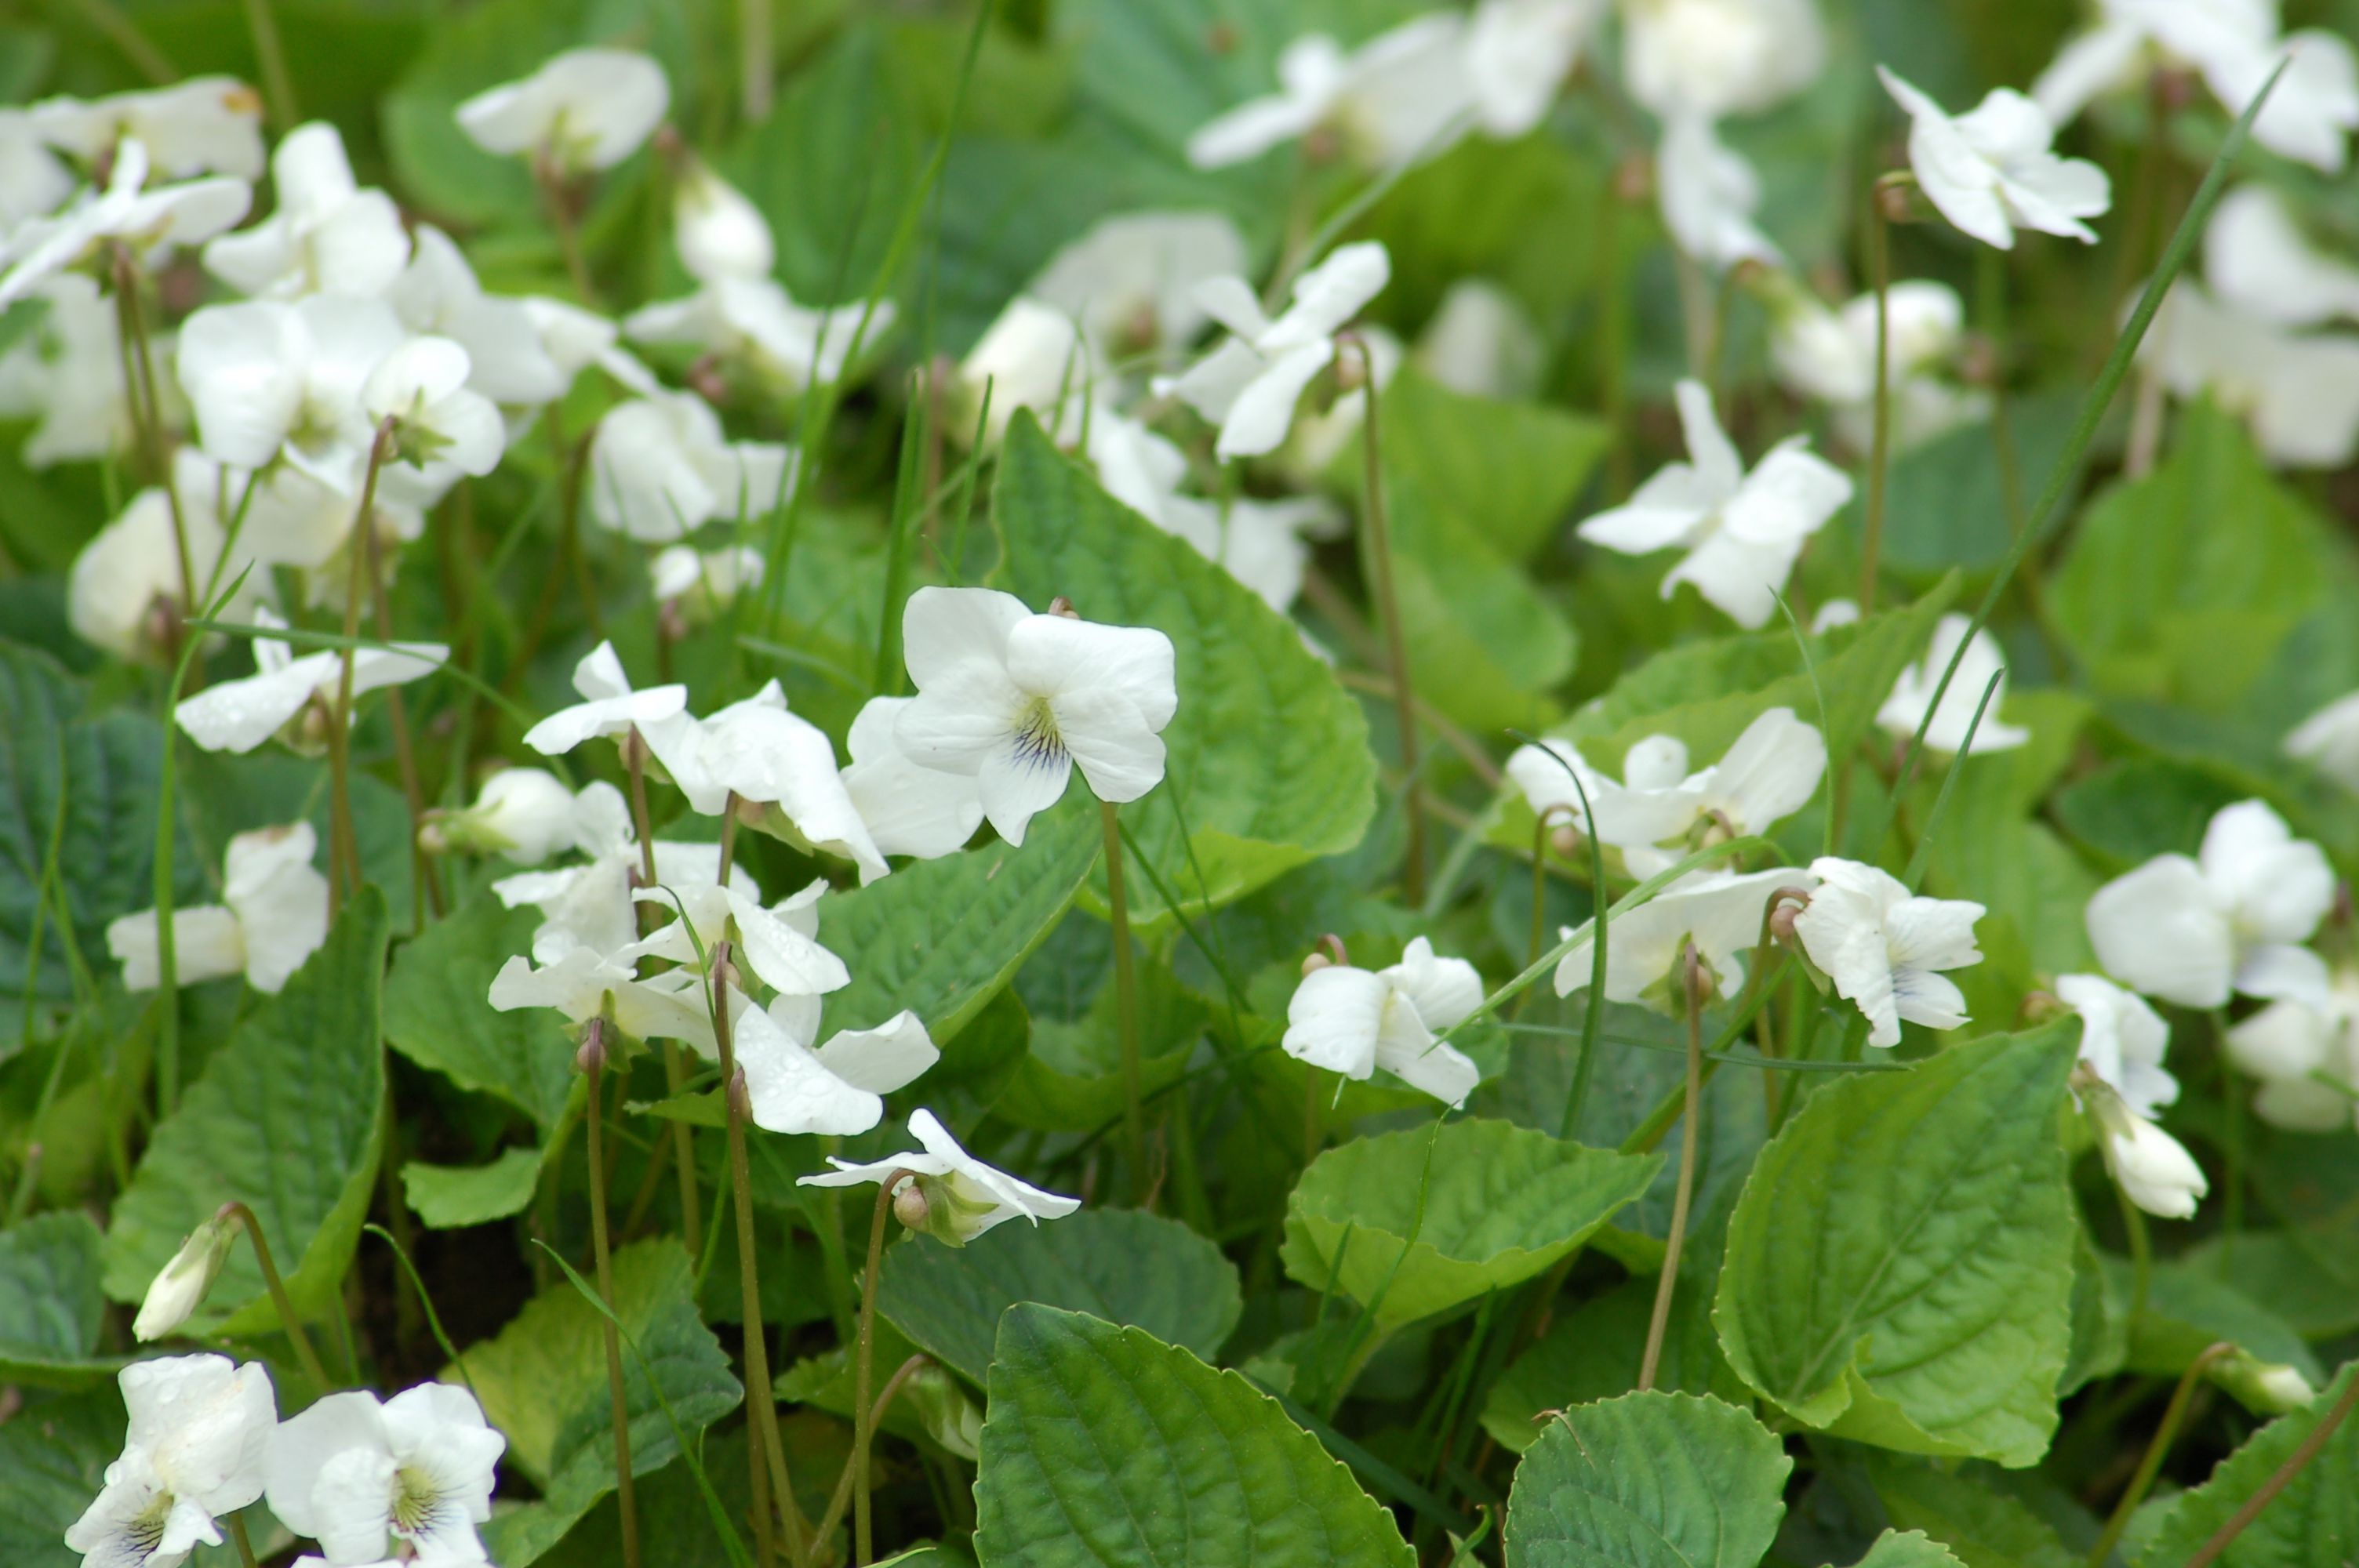 How To Get Rid Of Wild Violets In The Lawn